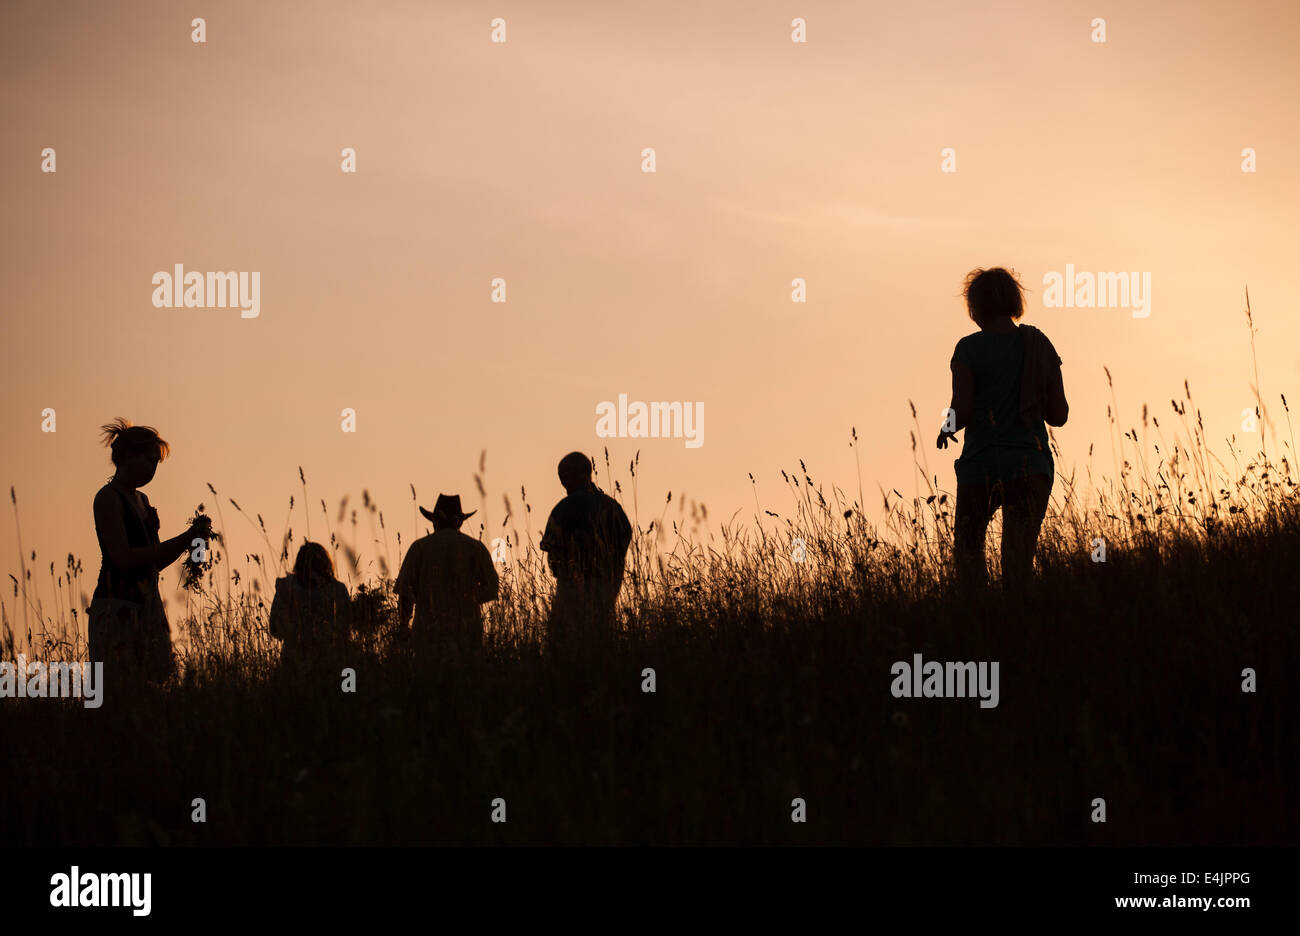 Silhouettes of People picking flowers during midsummer soltice celebraton against the background of sunset Stock Photo